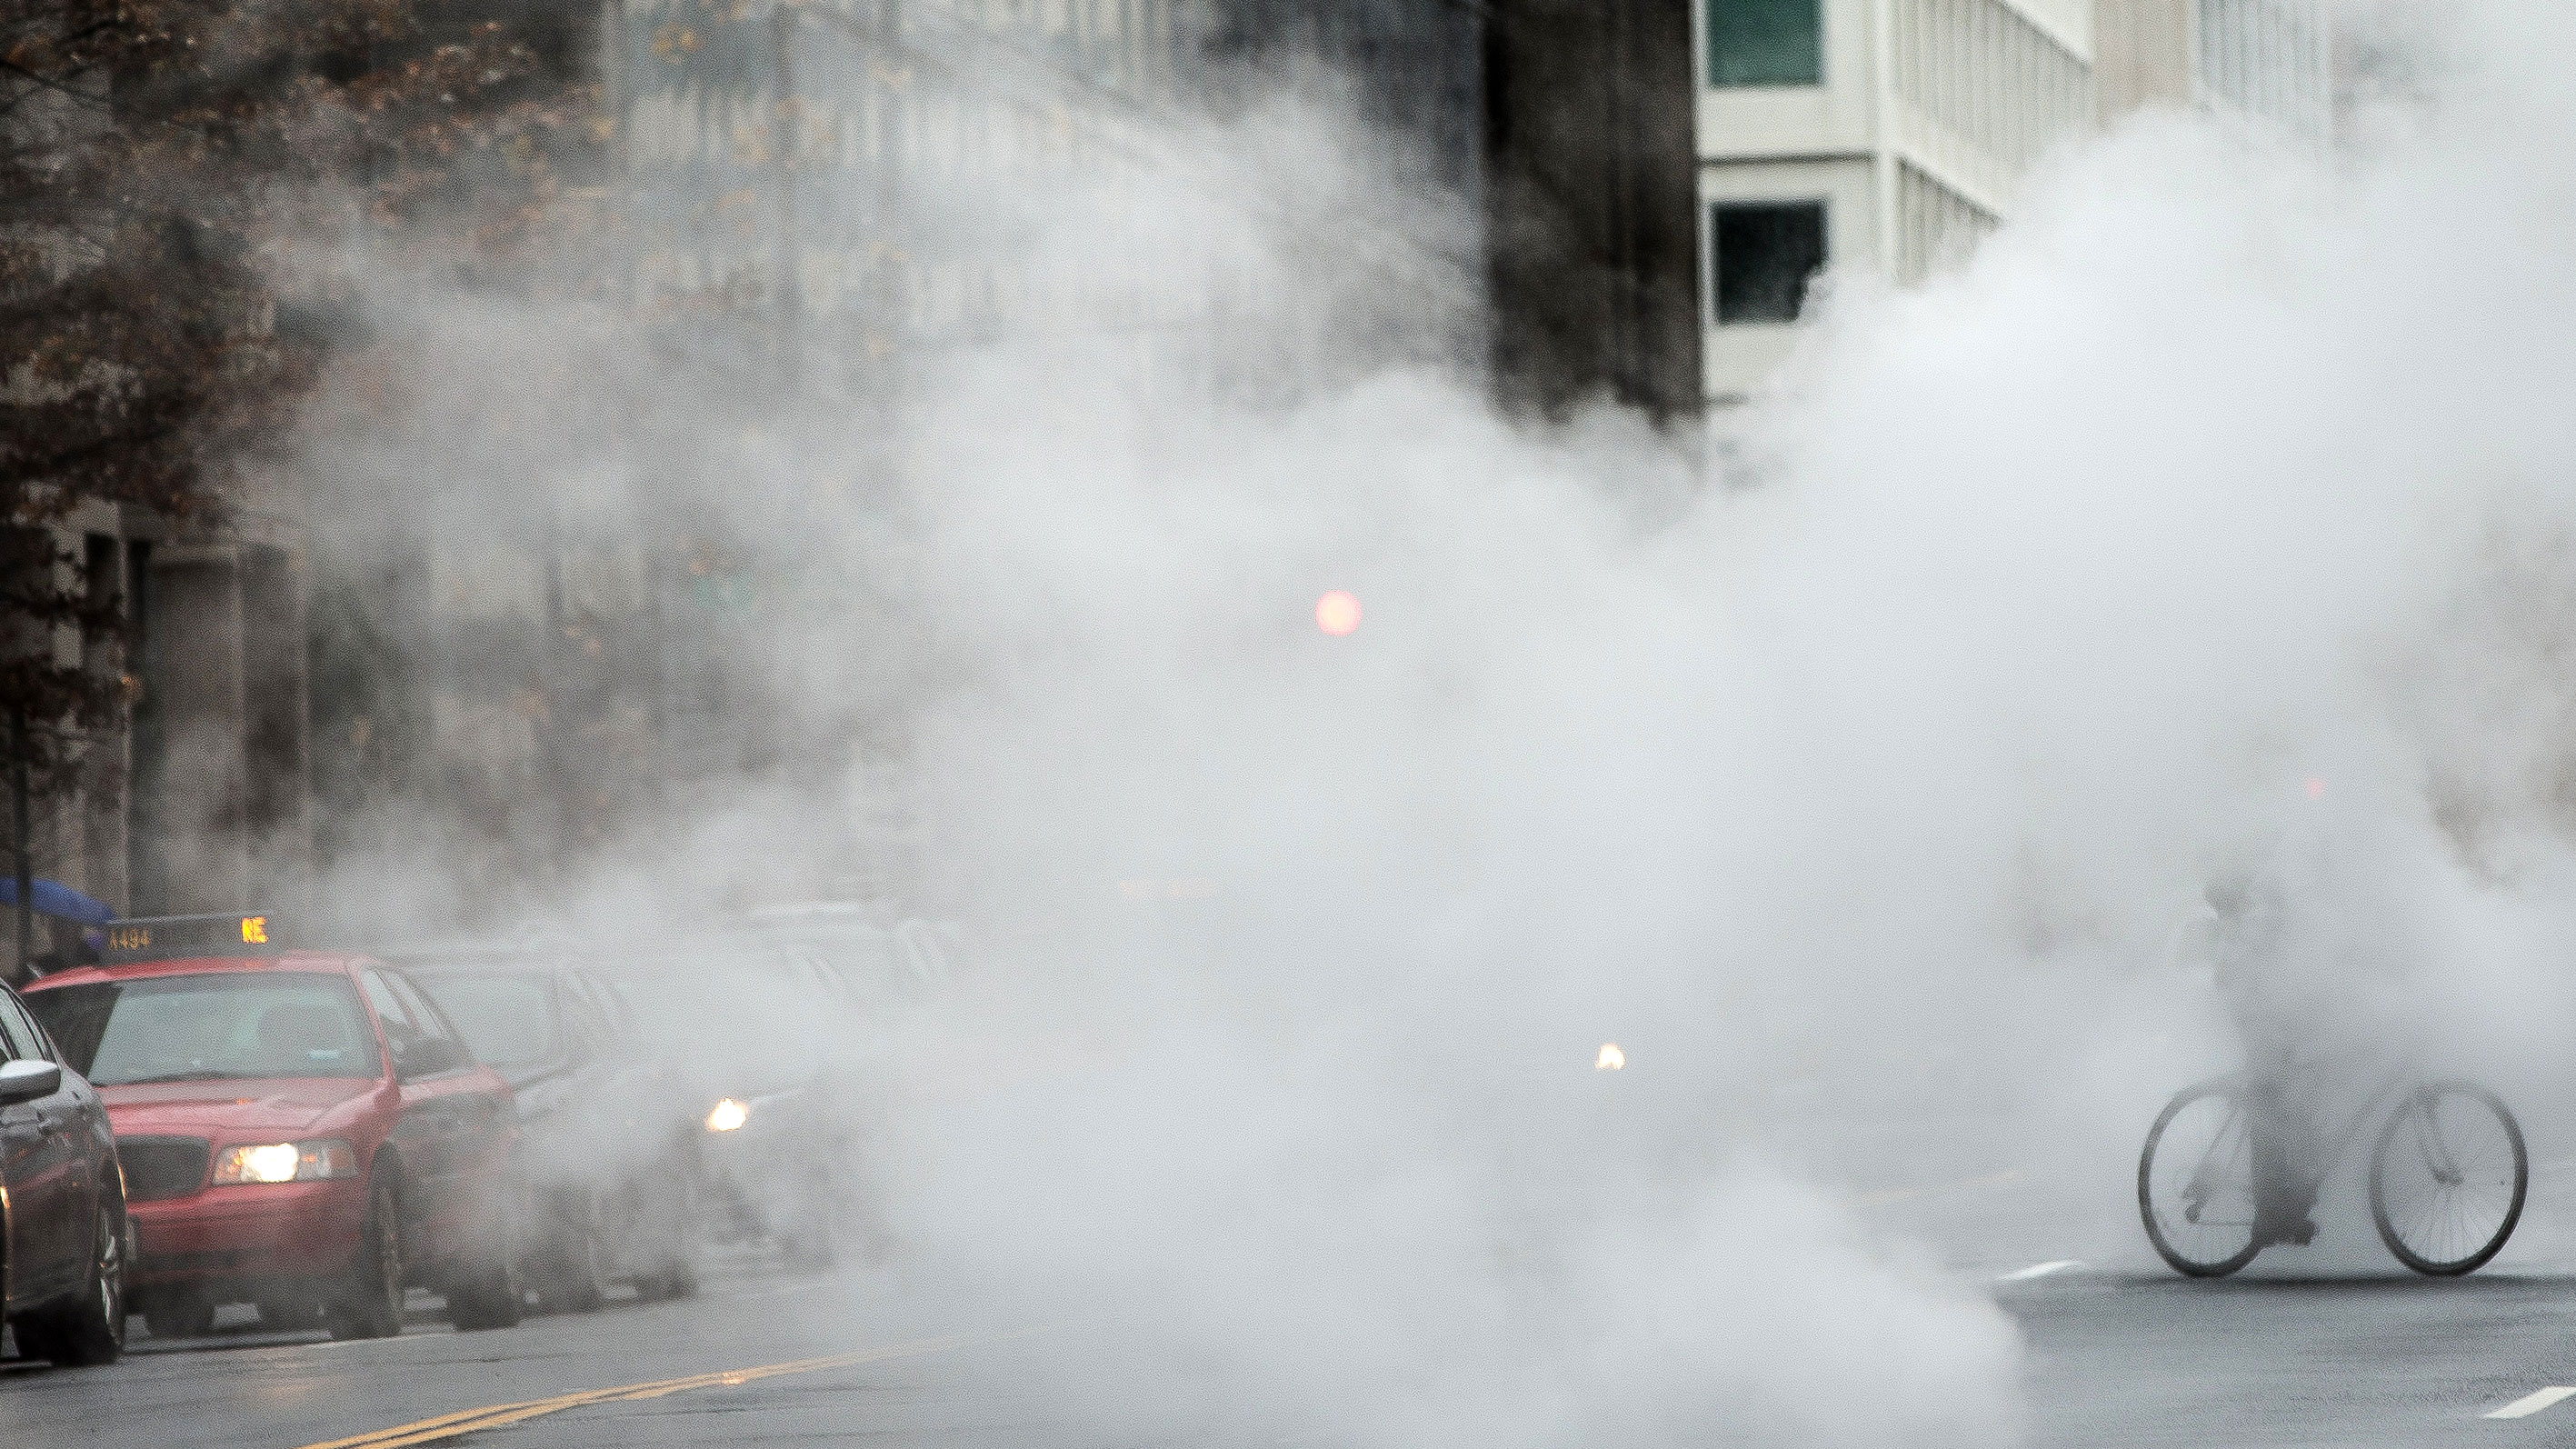 A bicyclist rides through steam vents along 17th Street in Northwest Washington, Monday, Nov. 30, 2015. (AP Photo/Andrew Harnik)